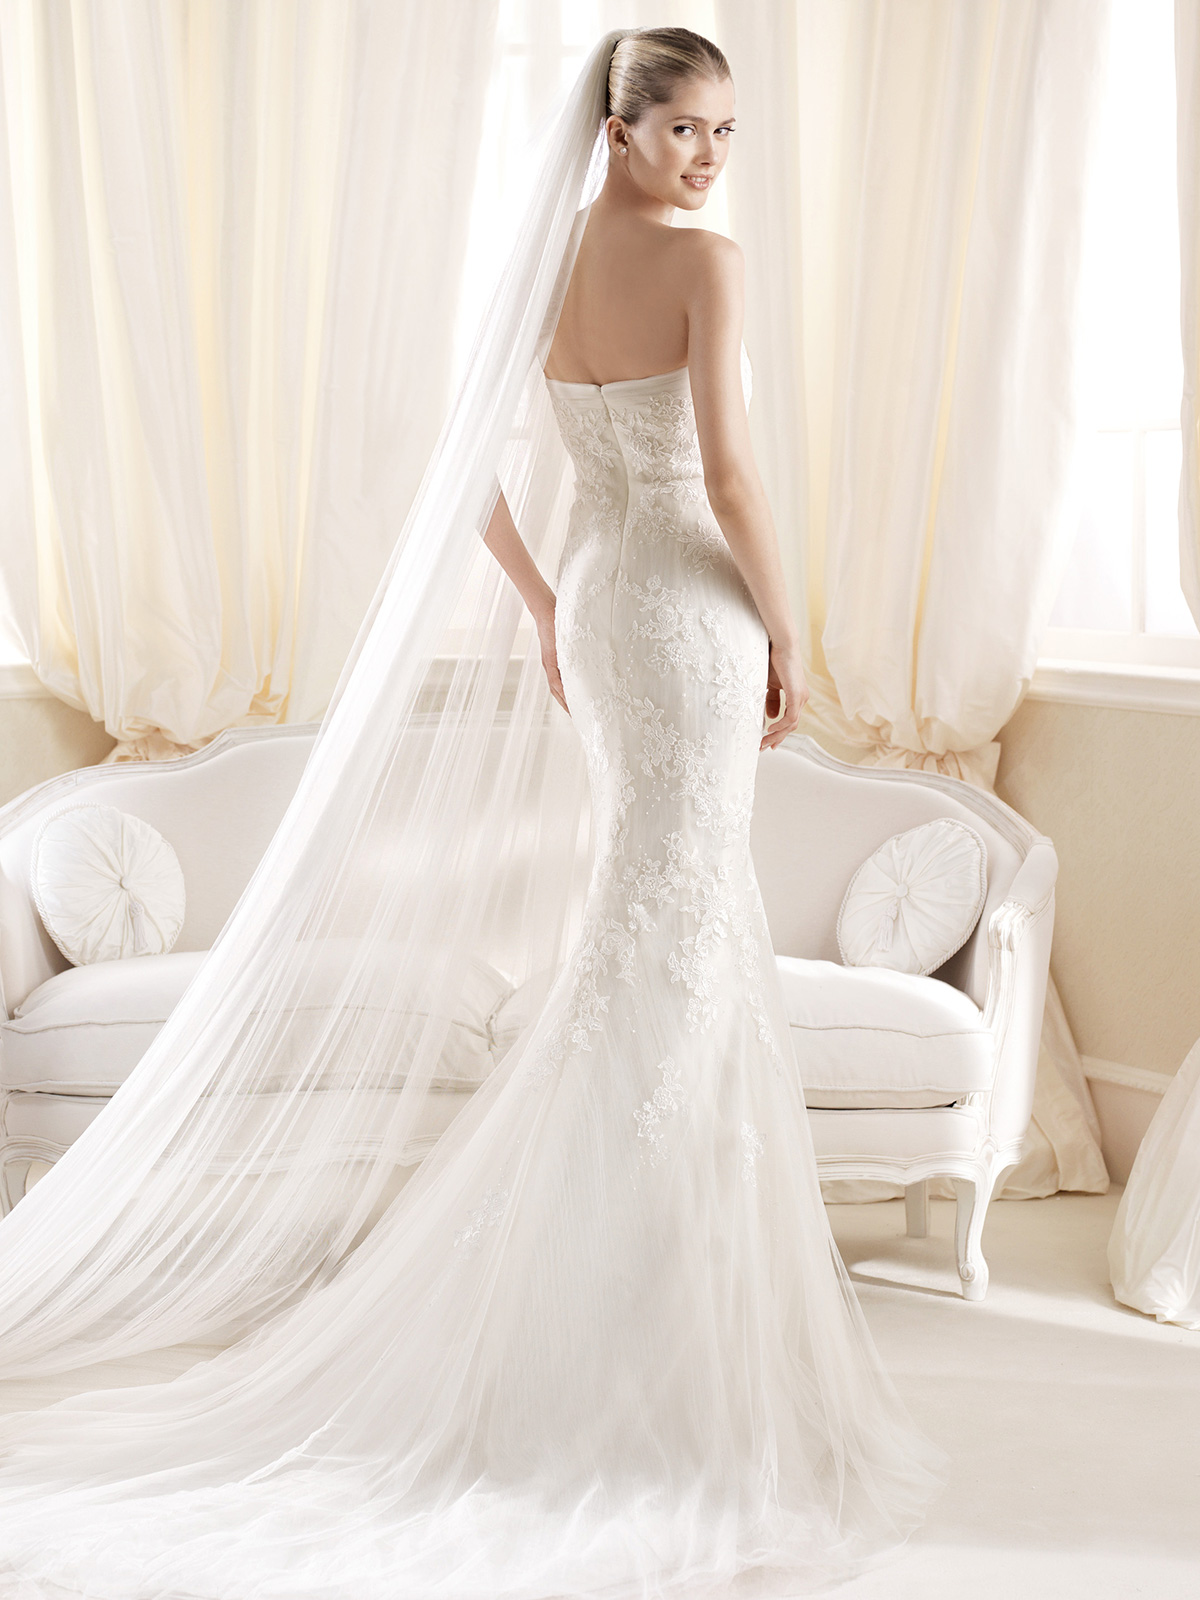 y Strapless Wedding Dresses Viewing Gallery